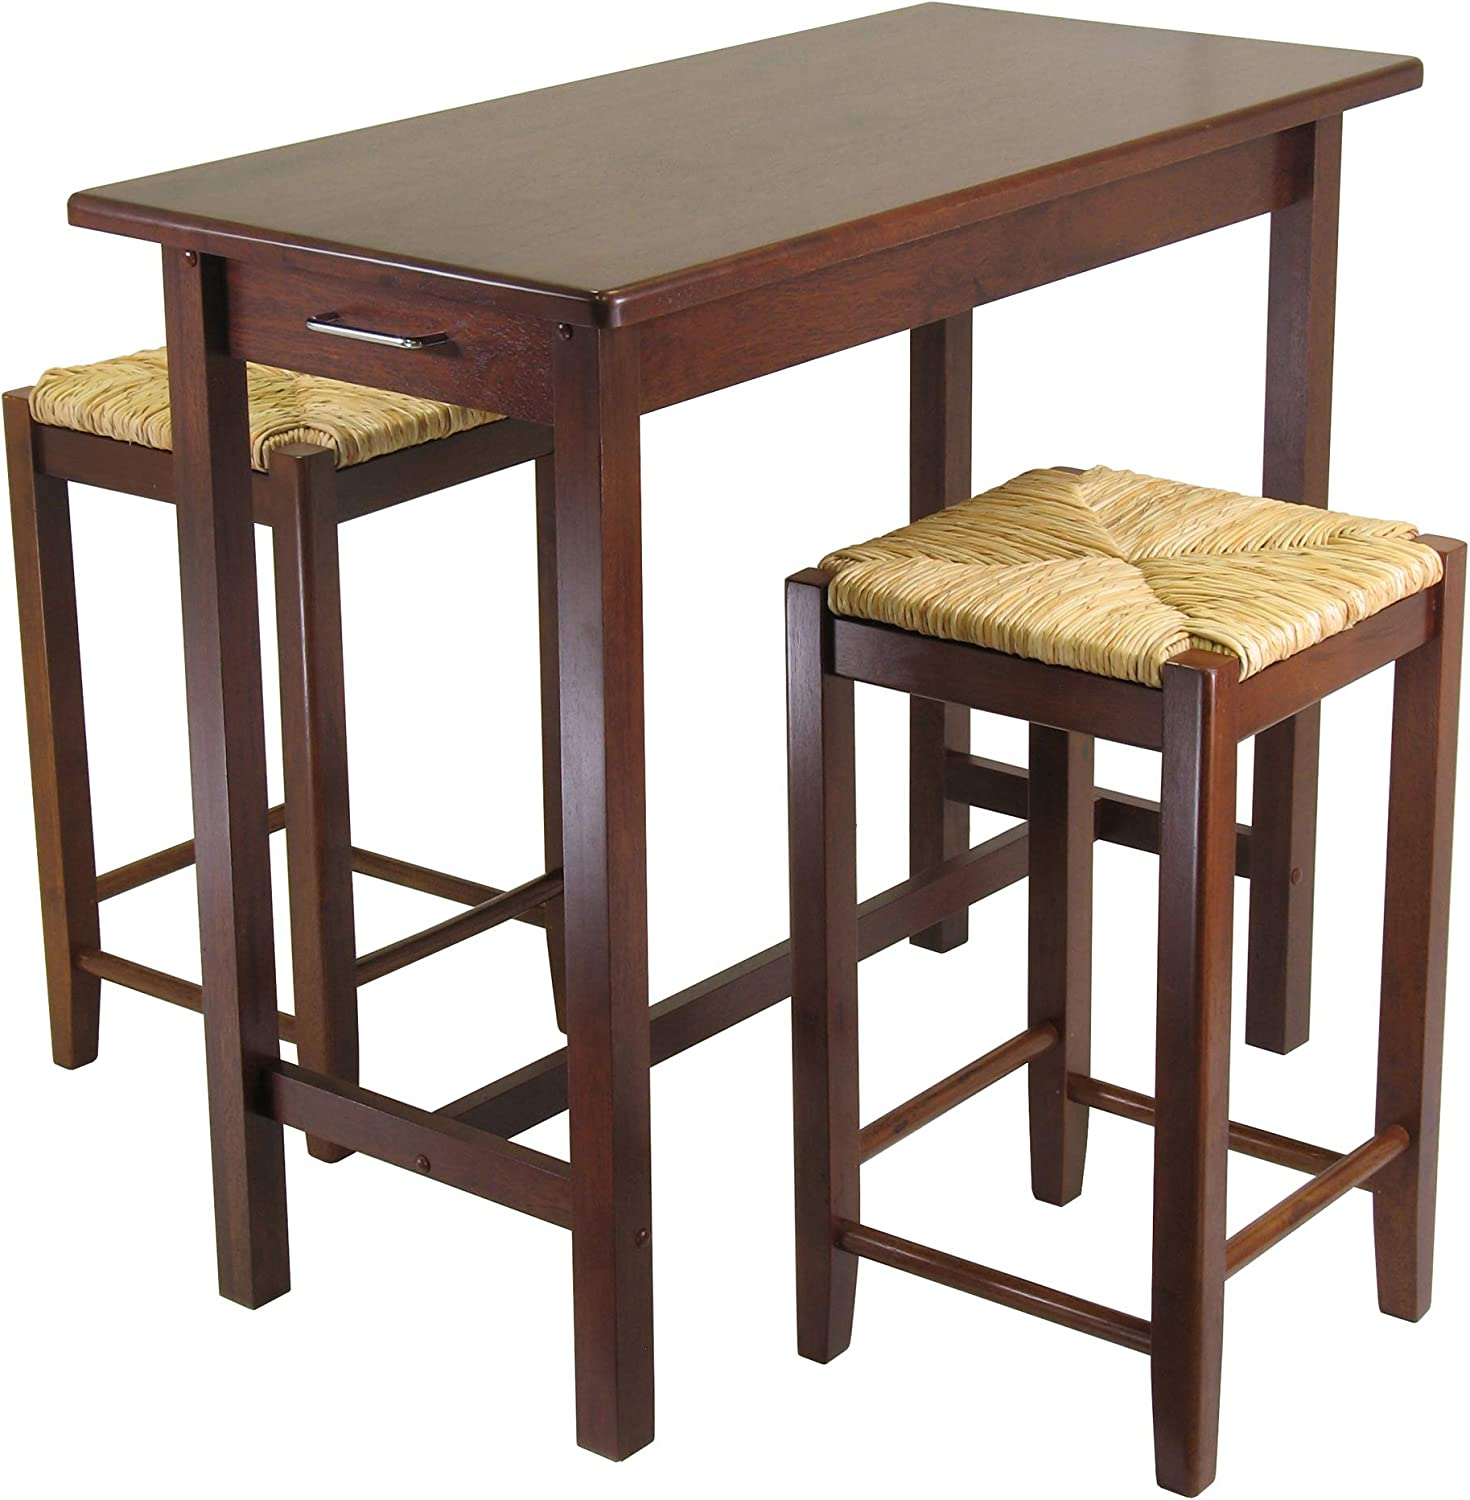 Winsome Kitchen Island Table With 2 Rush Seat Stools 2 Cartons 3 Piece Kitchen Islands Carts